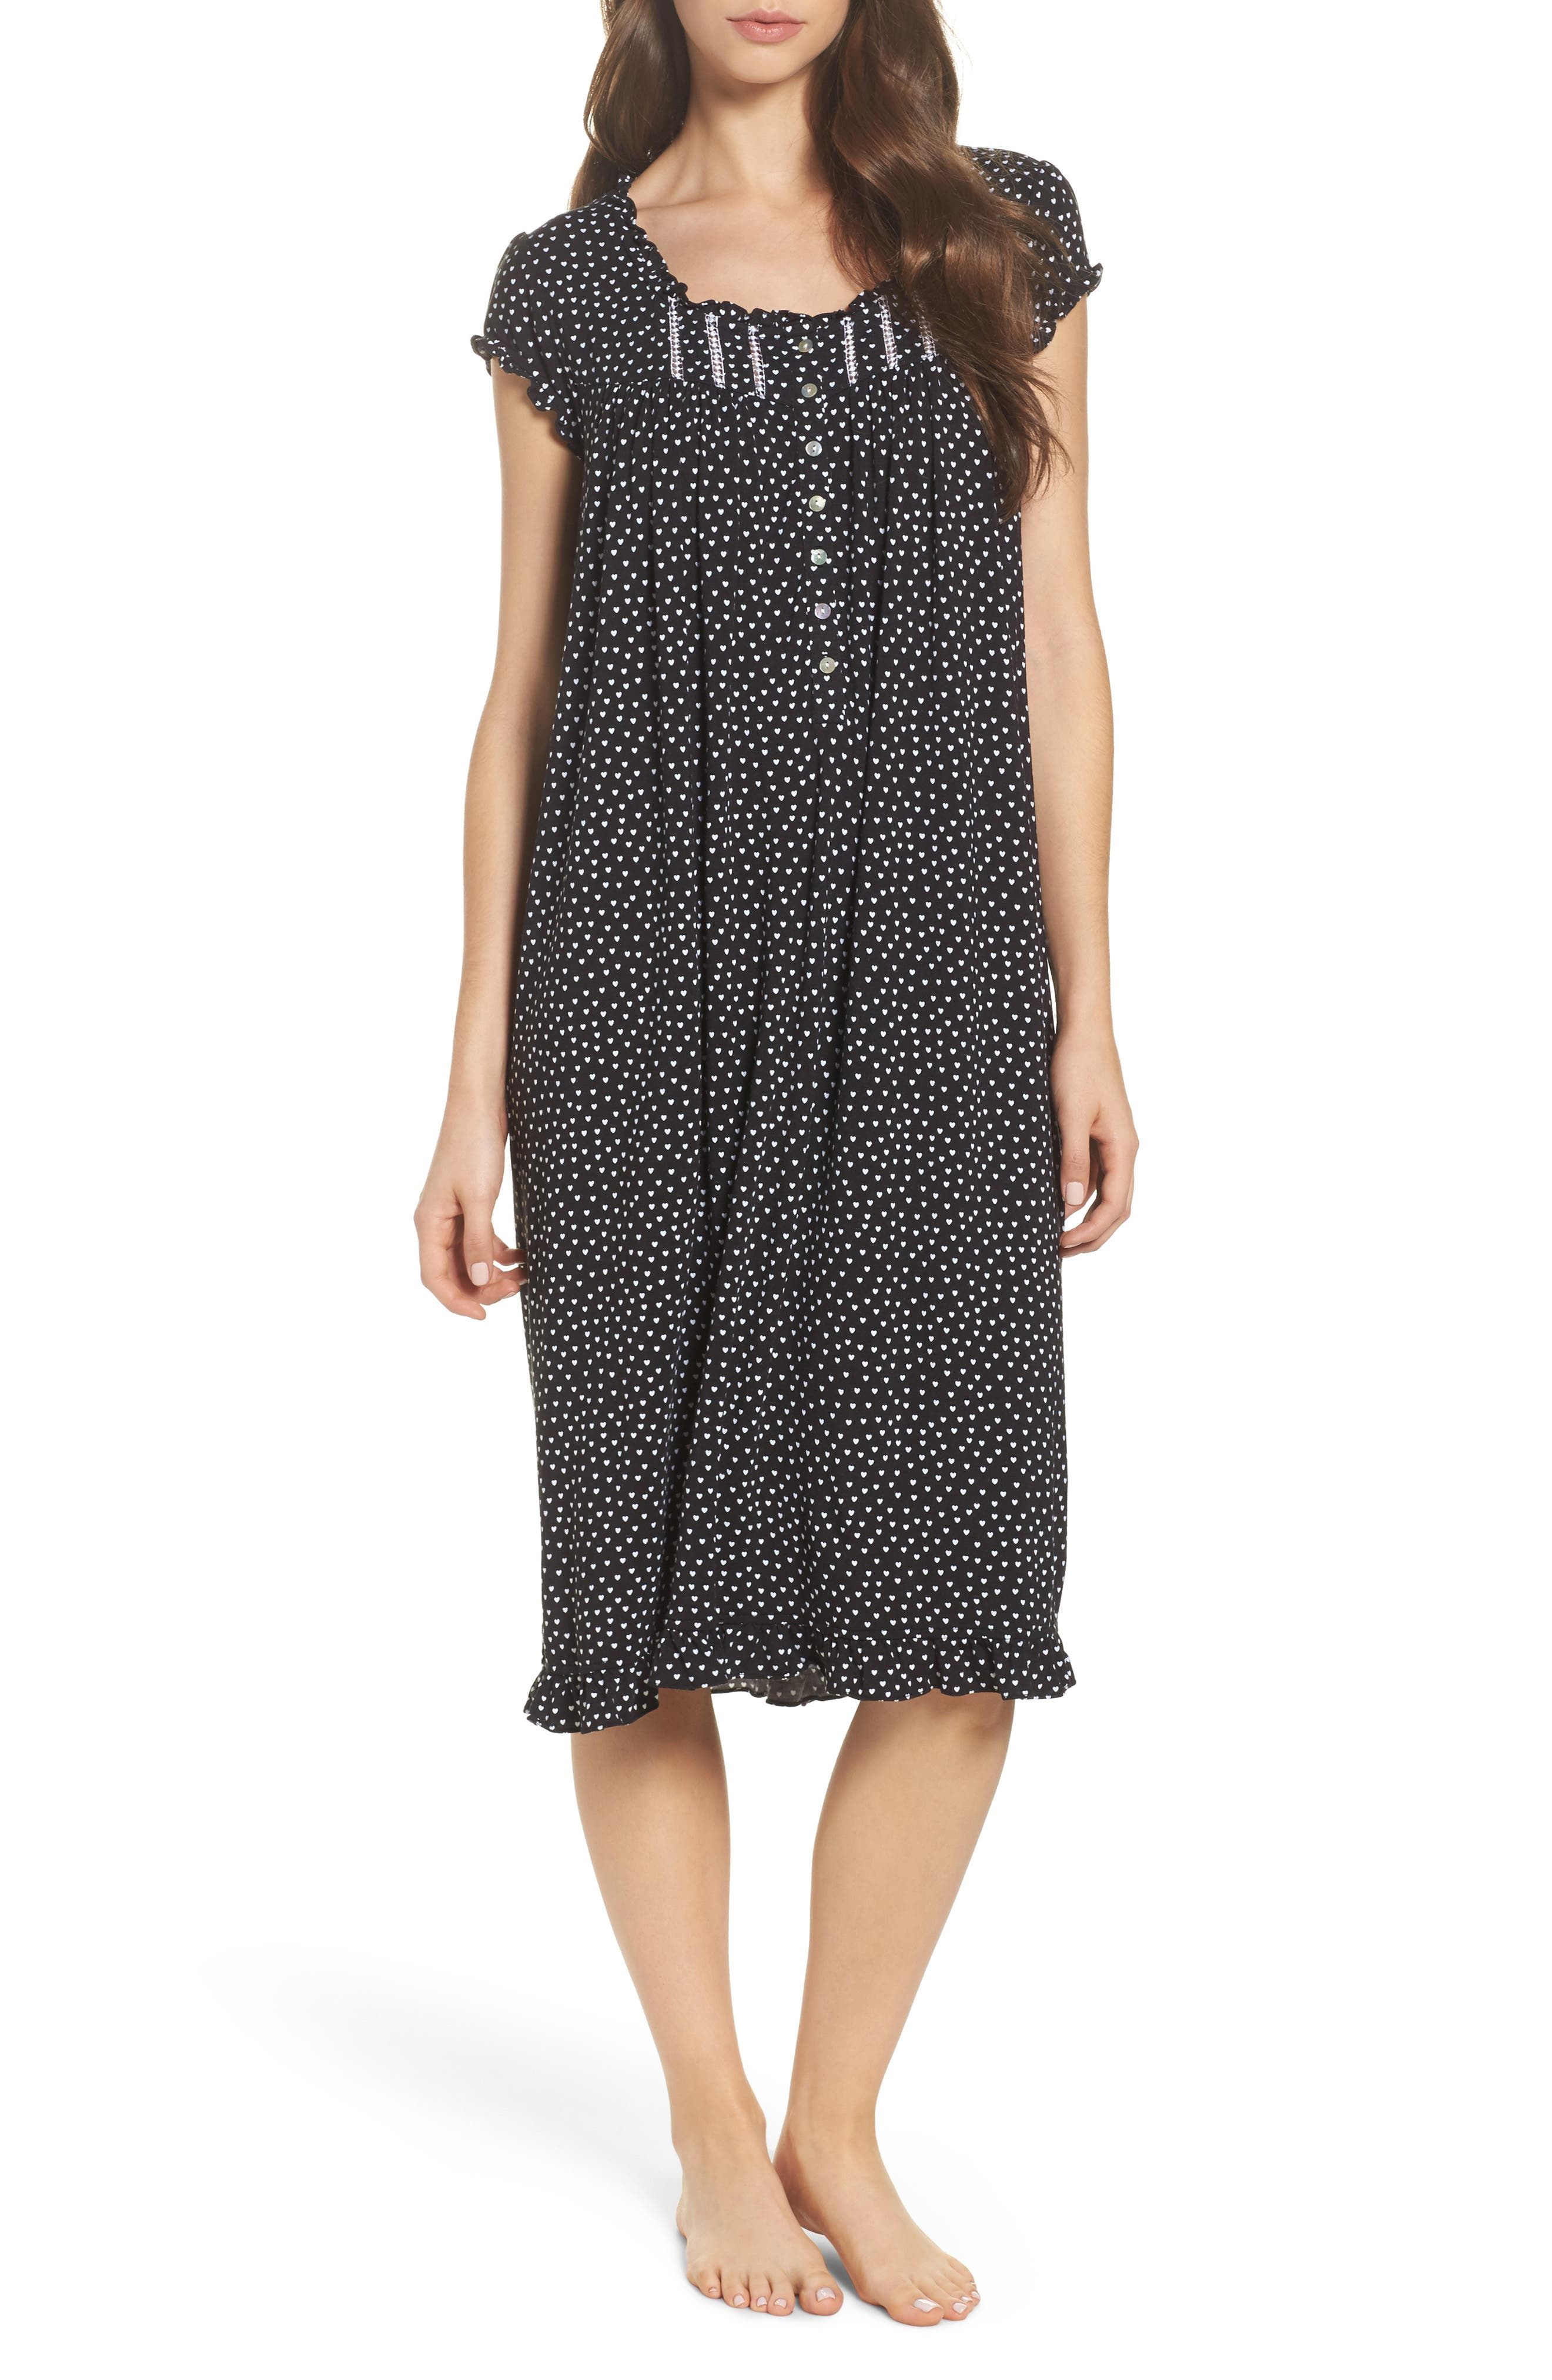 Modal Jersey Nightgown,                         Main,                         color, Black White Hearts